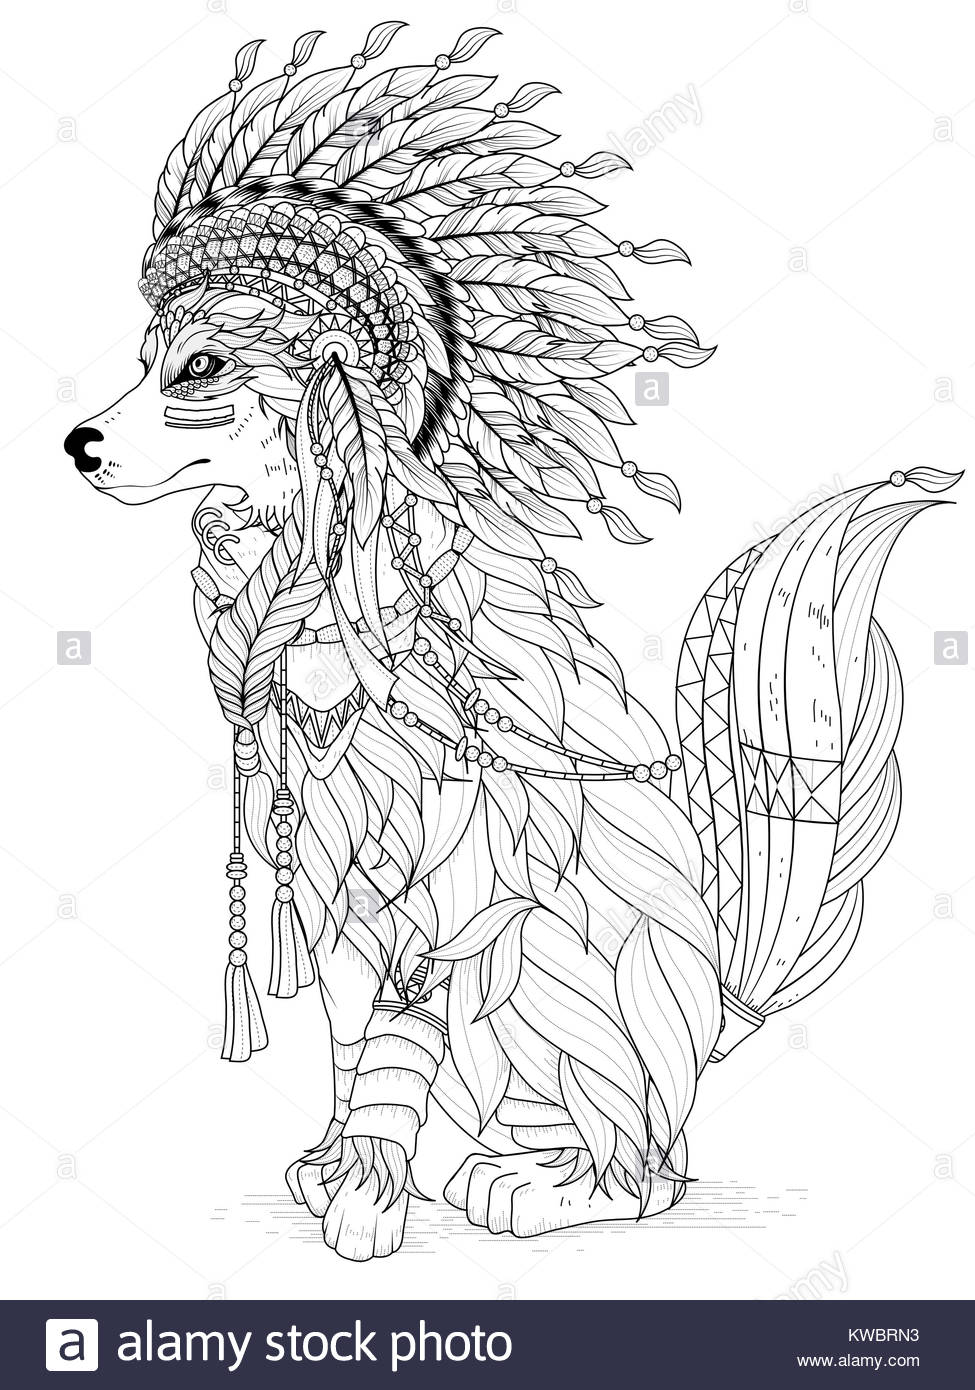 Wolf Vector Stock Photos & Wolf Vector Stock Images - Alamy